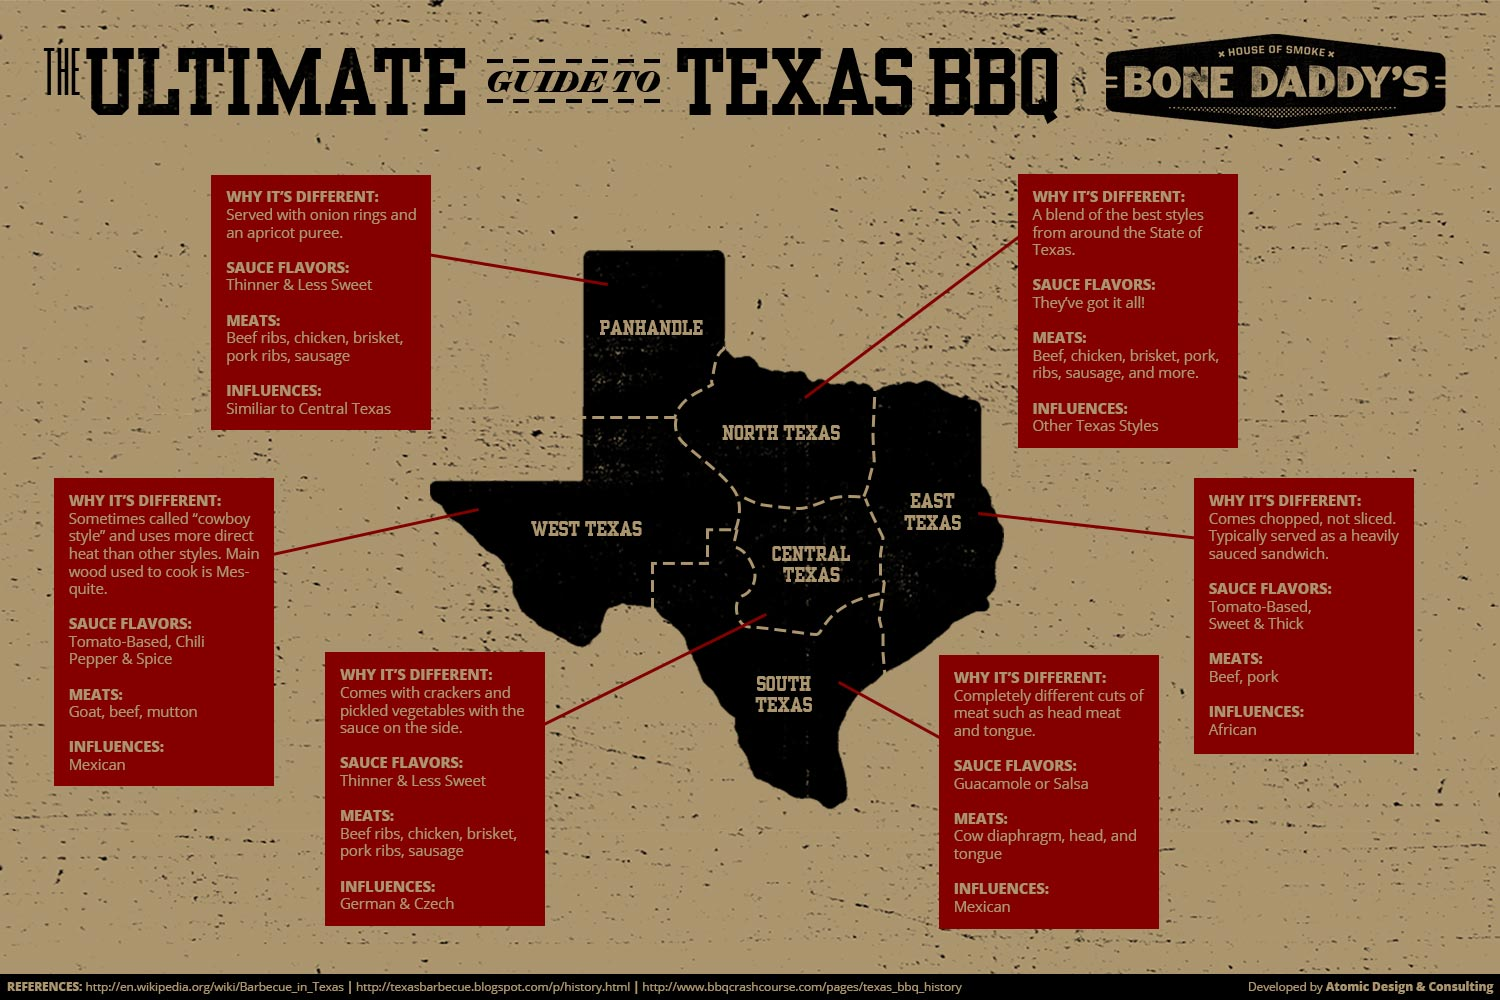 The Ultimate Guide to Texas Barbecue Infographic